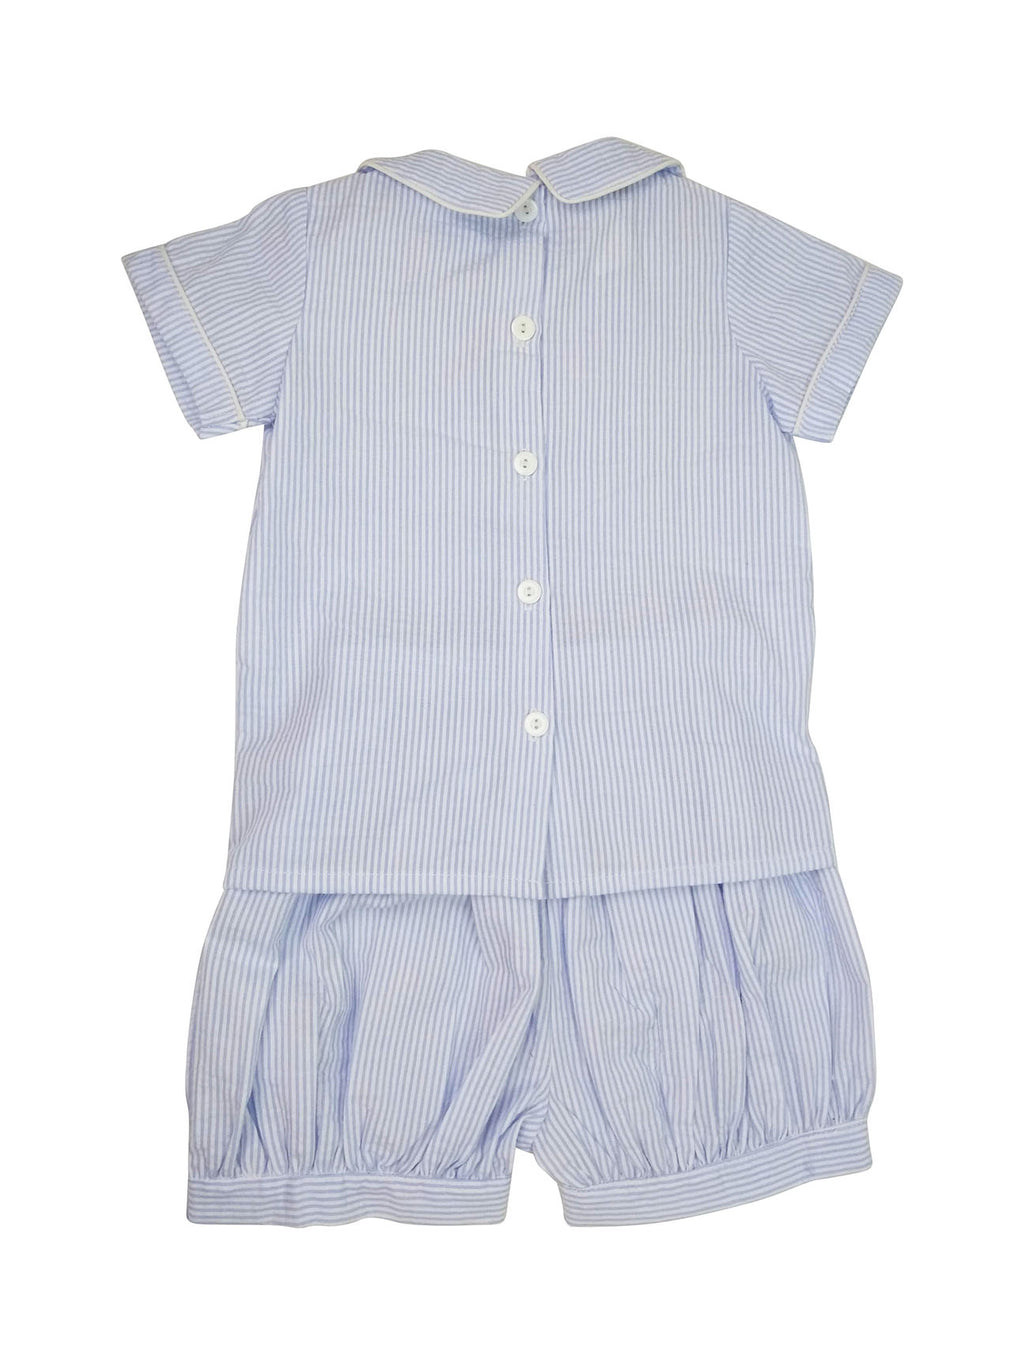 Blue Seersucker Boy's Short Set - Little Threads Inc. Children's Clothing